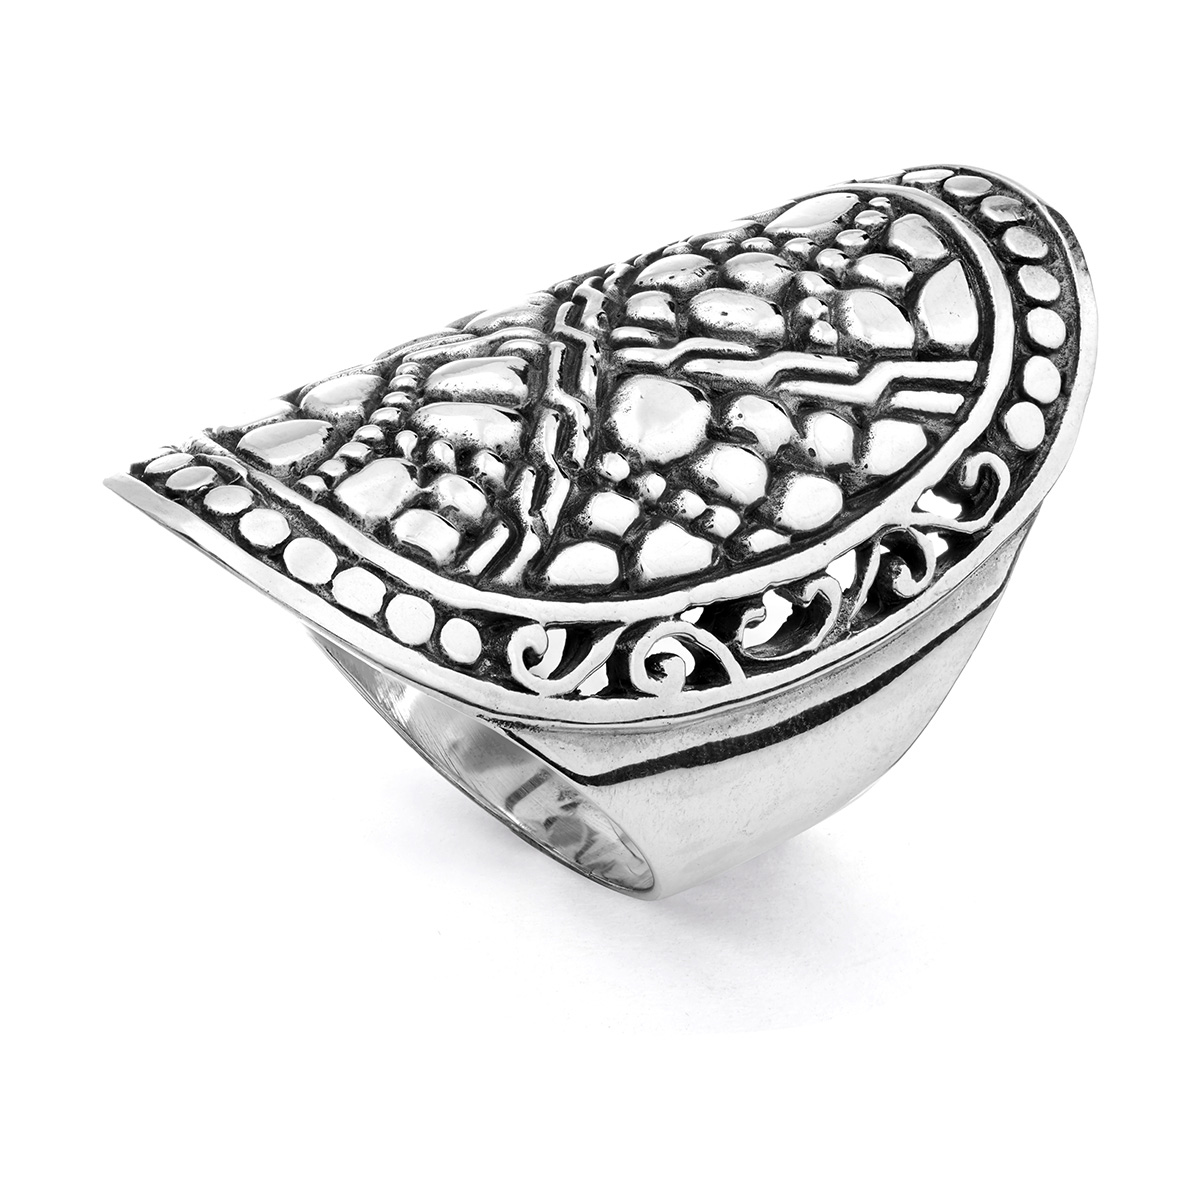 Geger Silver Ring